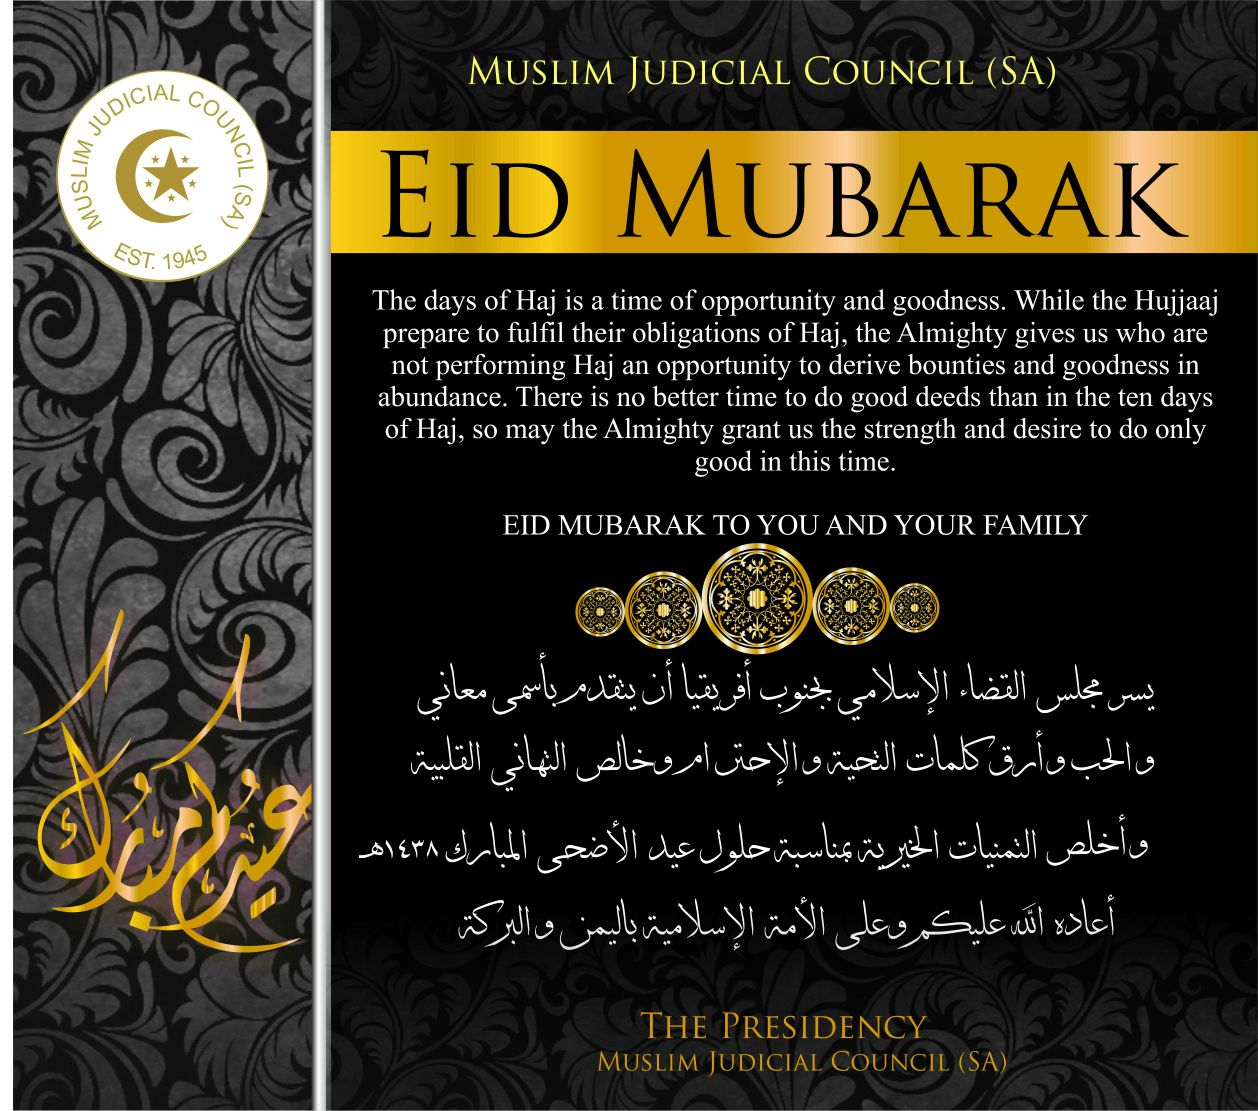 eid mubarak from the mjc (sa) - IMG 20170830 WA0000 - EID MUBARAK FROM THE MJC (SA)